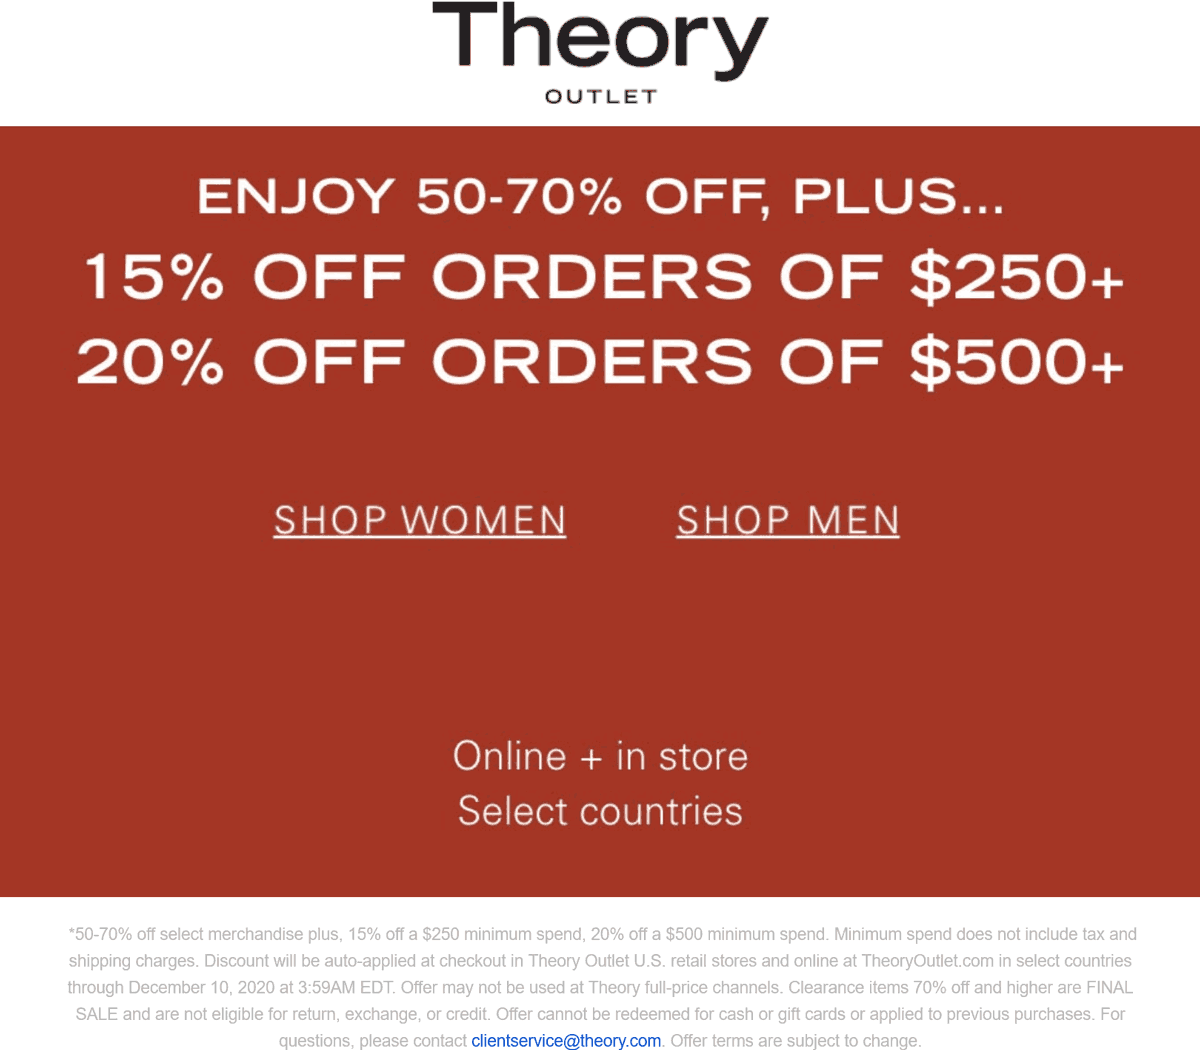 Theory Outlet coupons & promo code for [January 2021]